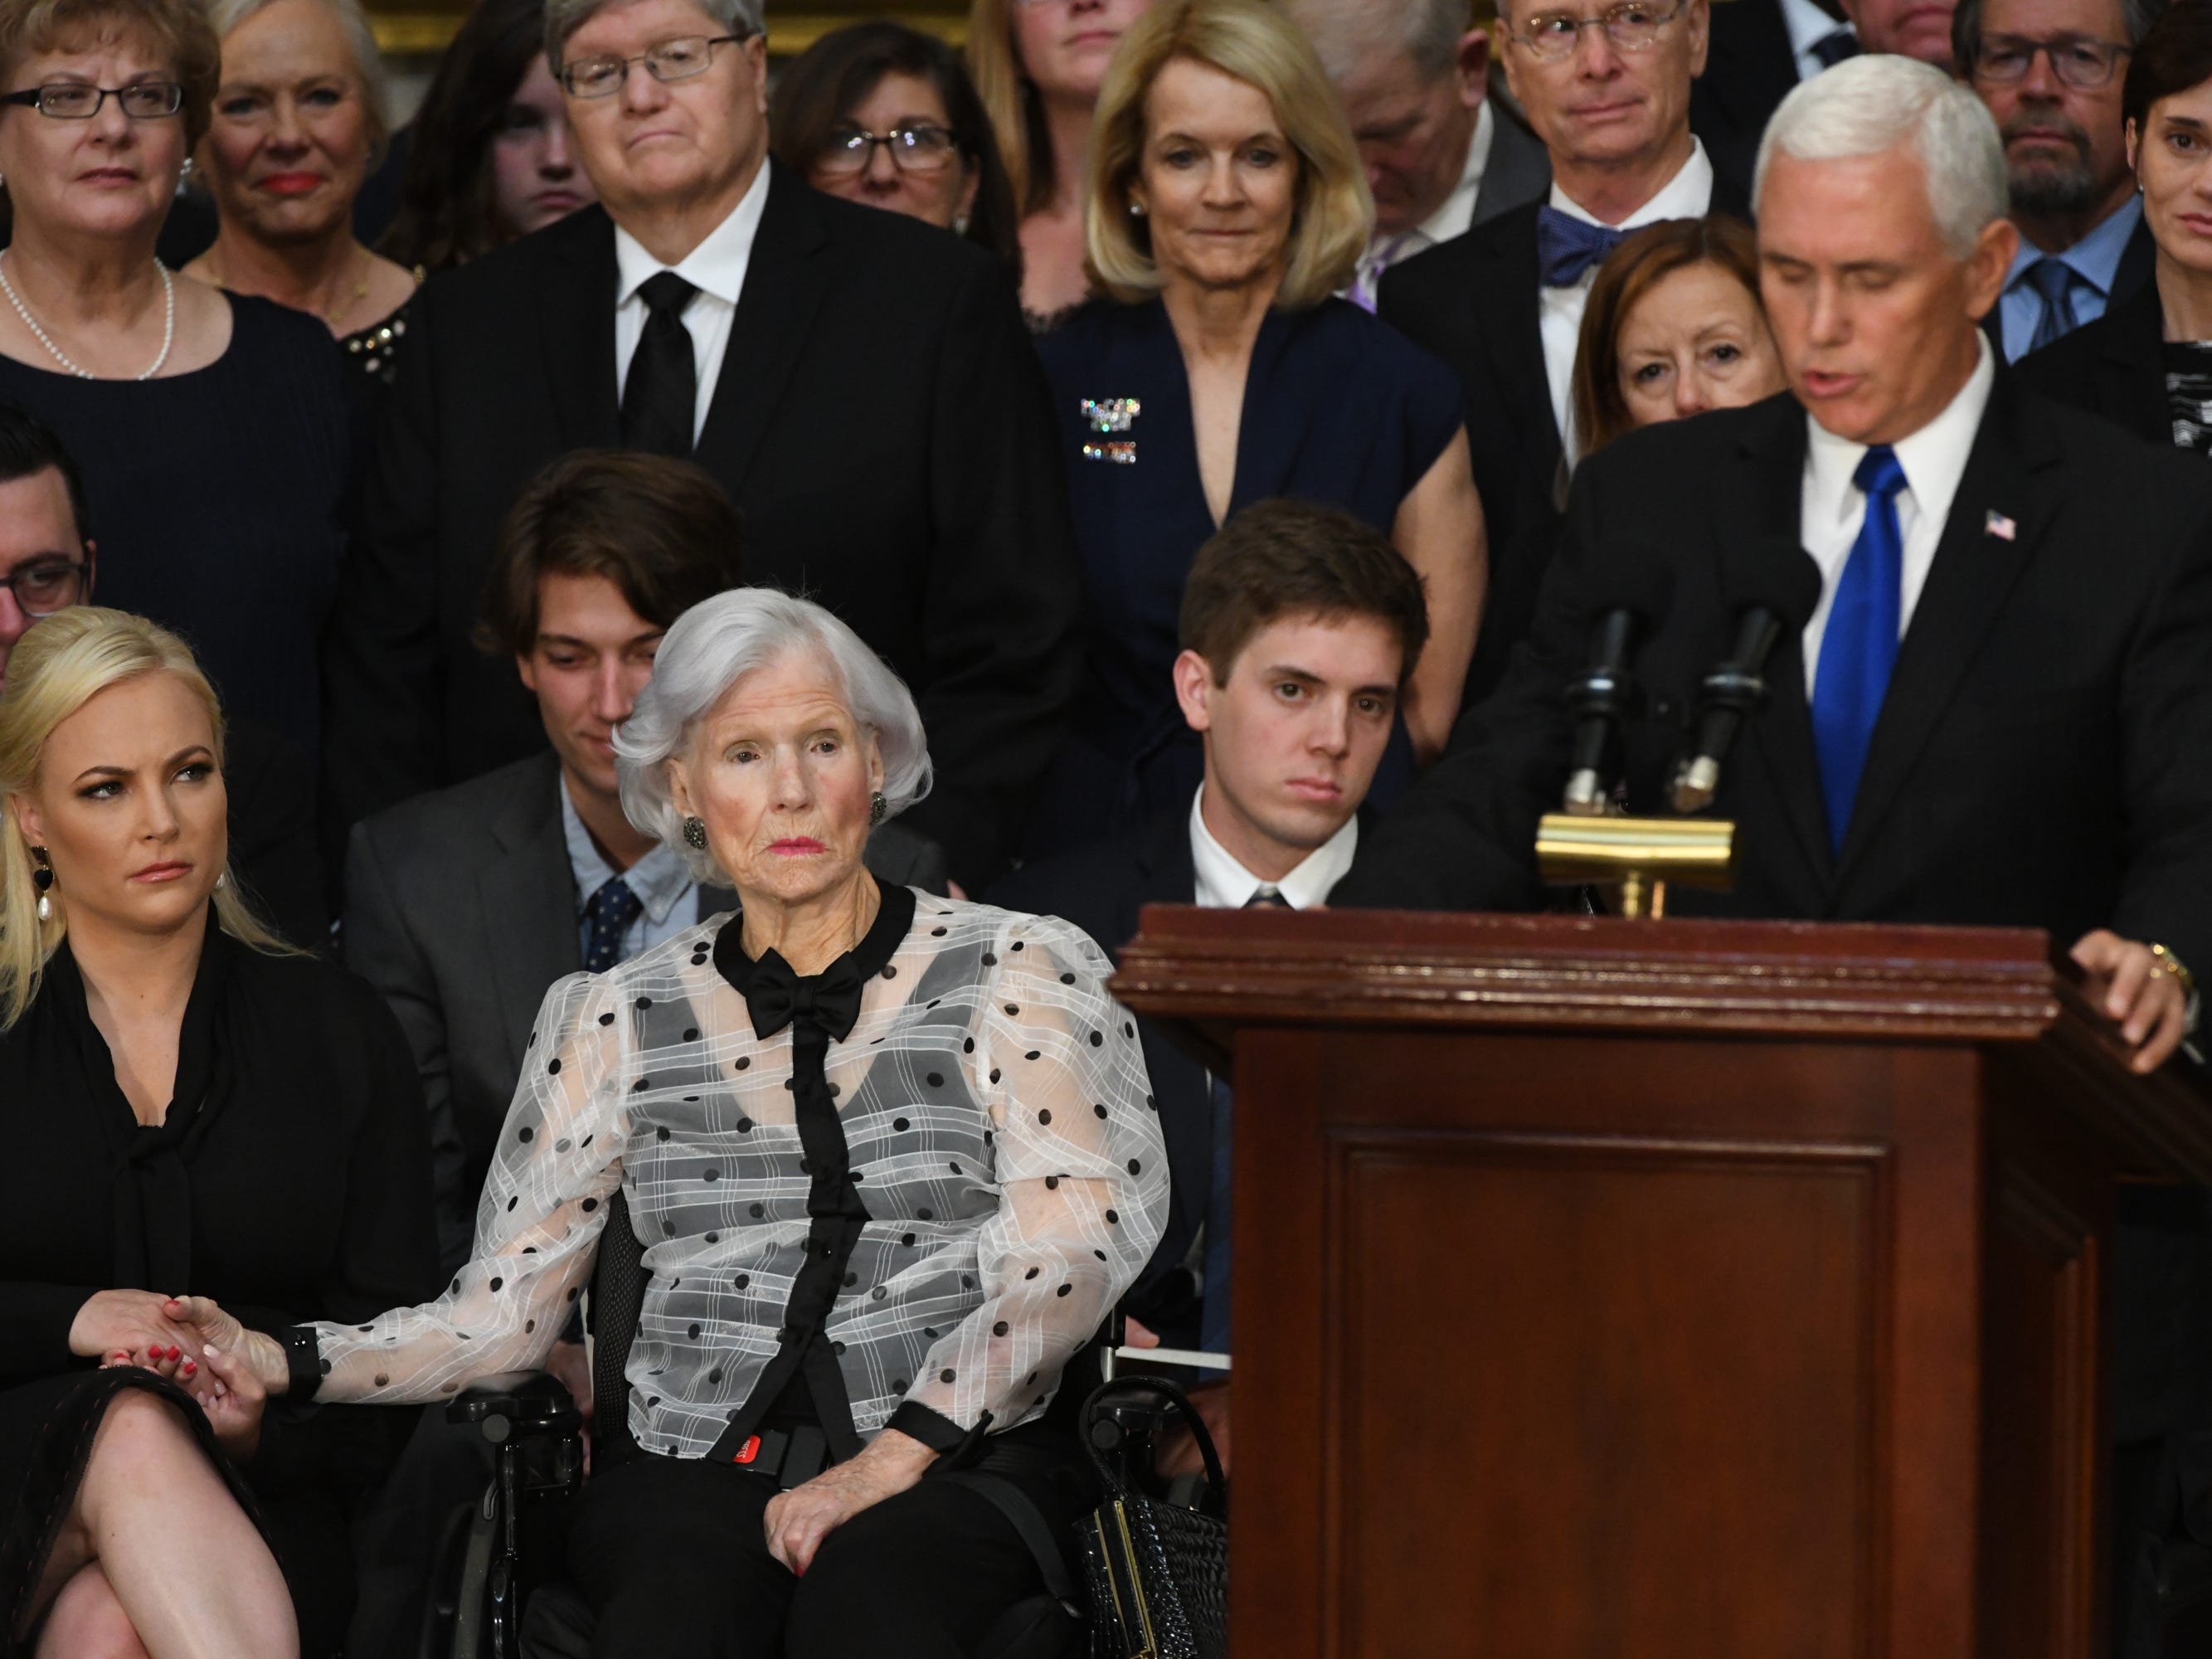 Meghan and Roberta McCain listen as Vice President Mike Pence speaks about the life of Sen. John McCain. The body of John McCain lies in state at the U.S. Capitol in Washington on Aug. 31, 2018 in Washington. Sen. McCain died on Aug. 25. --    Photo by Jasper Colt, USA TODAY Staff ORG XMIT:  JC 137436 McCain U.S. Capi 8/31/2018 (Via OlyDrop)